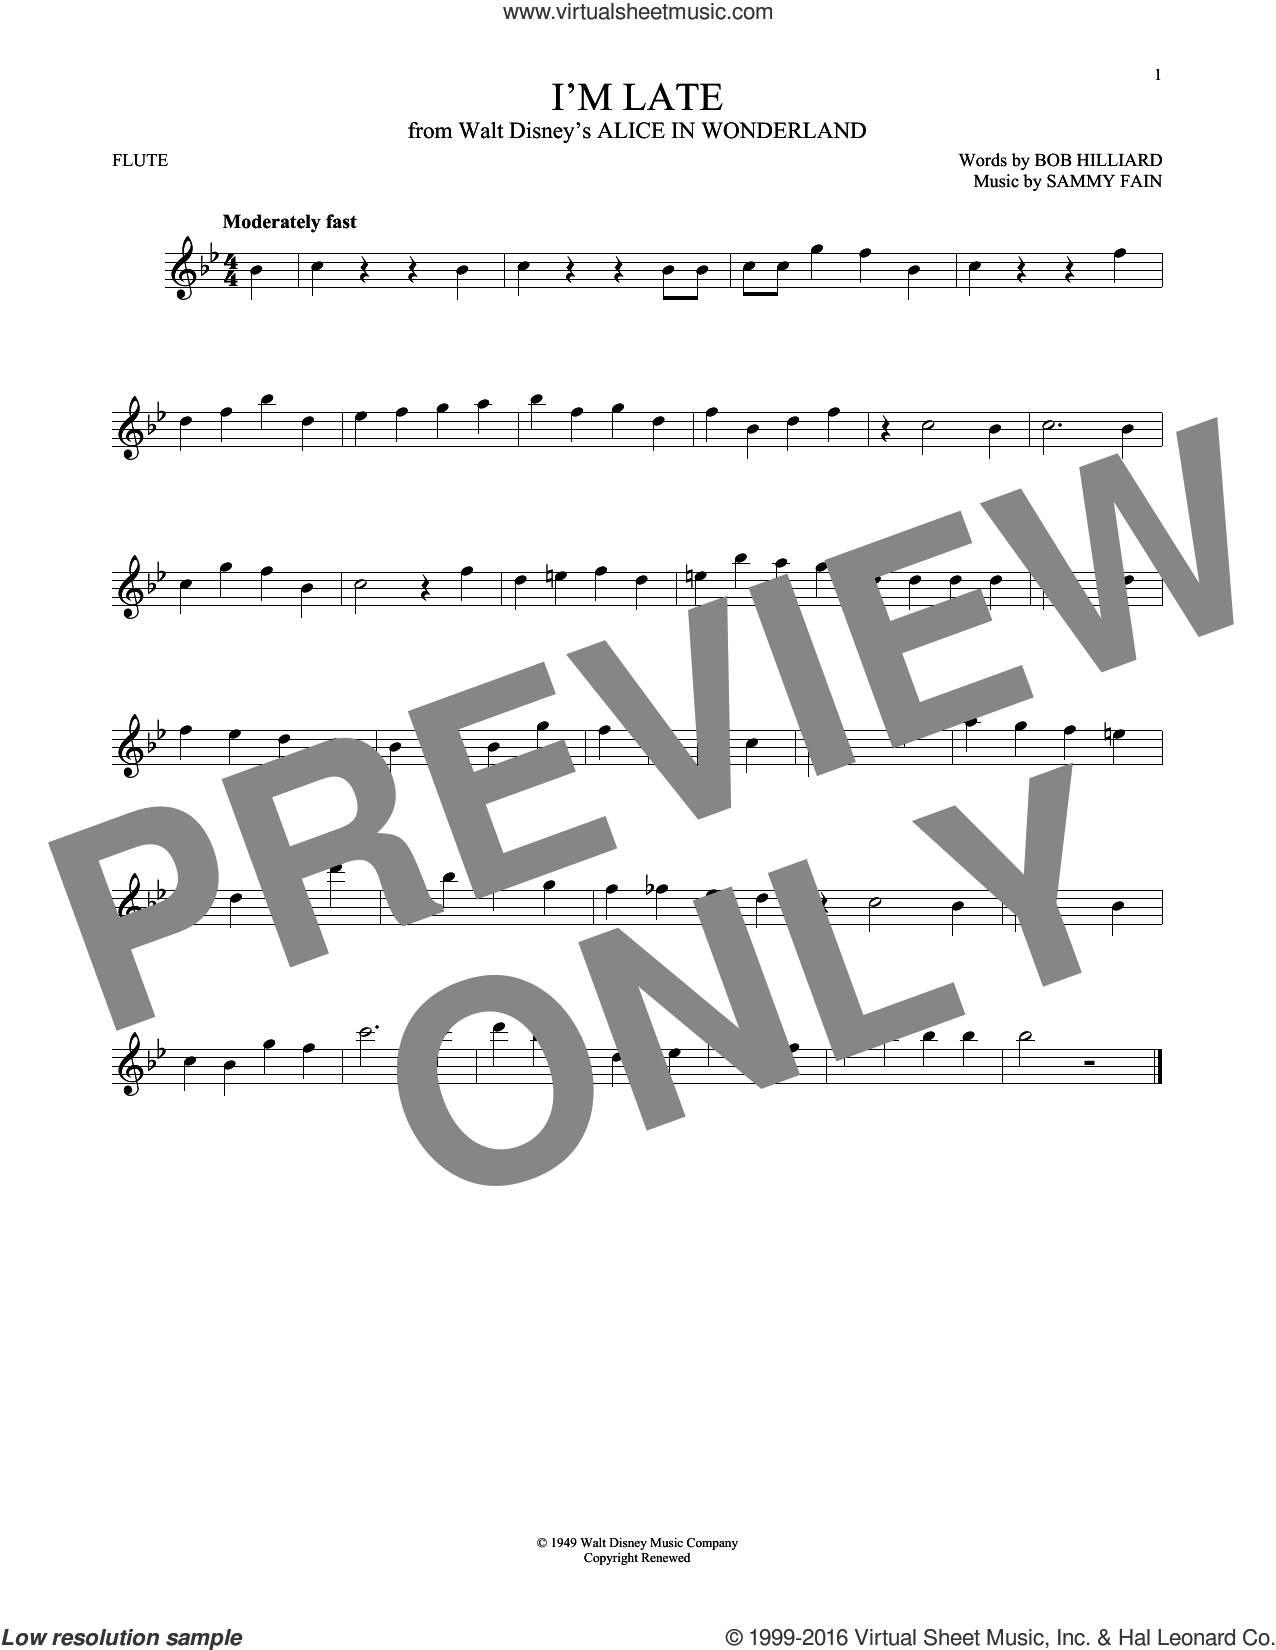 I'm Late sheet music for flute solo by Sammy Fain